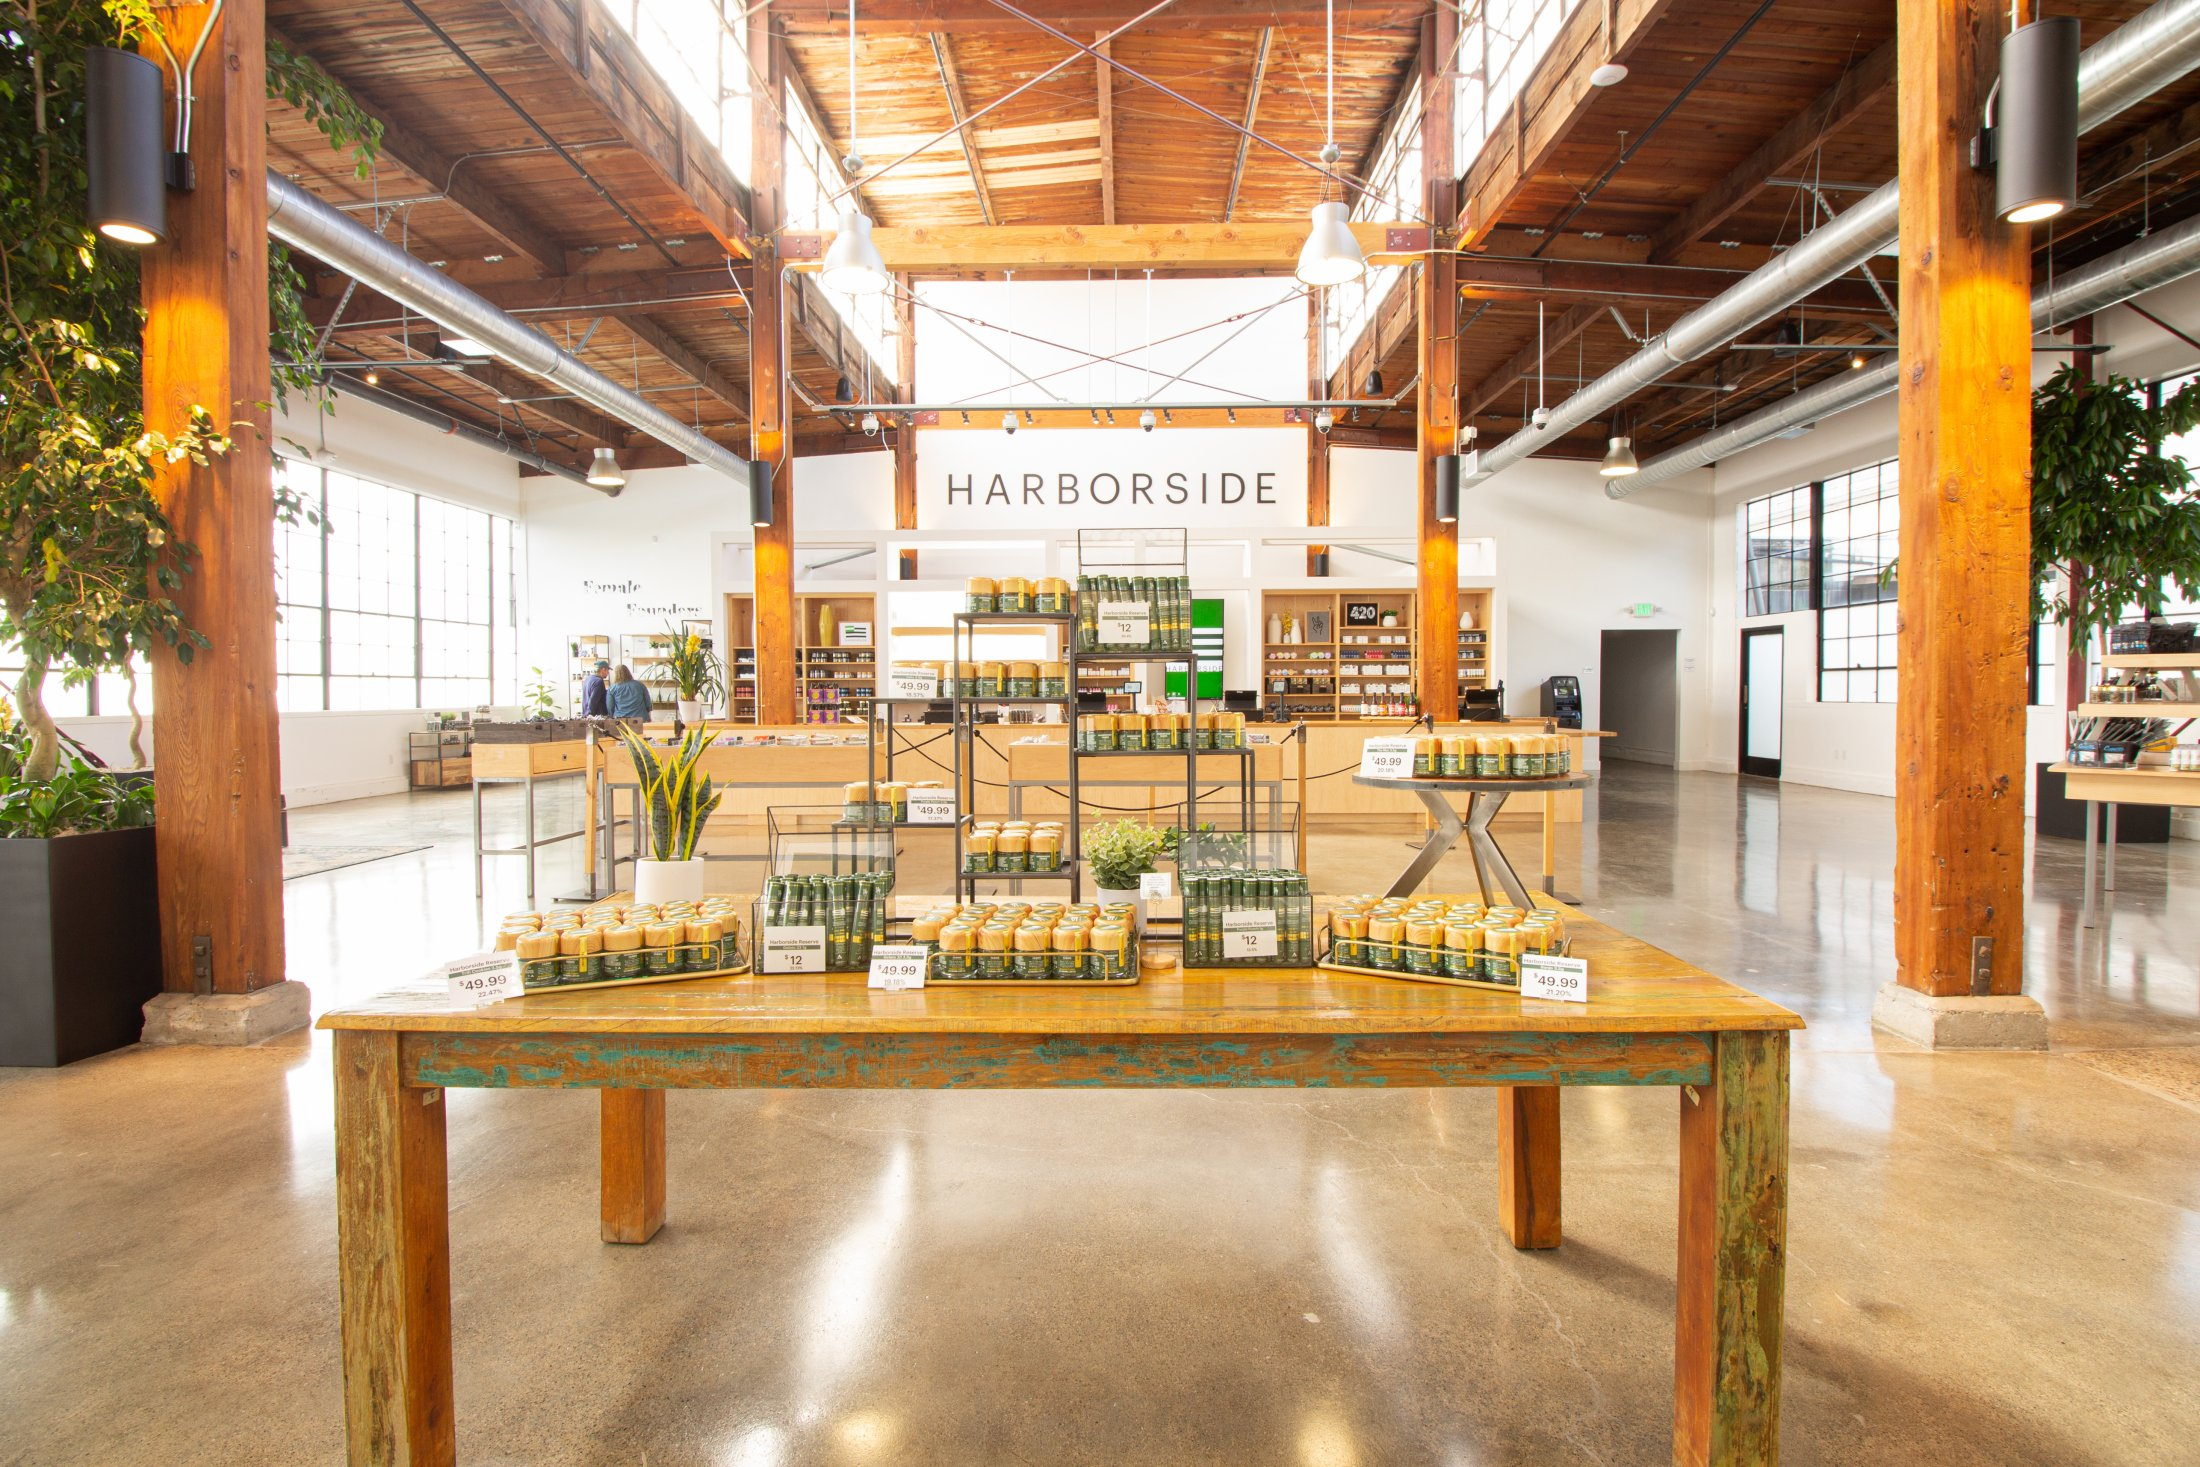 Harborside: Reimagining the cannabis retail experience through a minimalist, greenhouse-inspired dispensary design